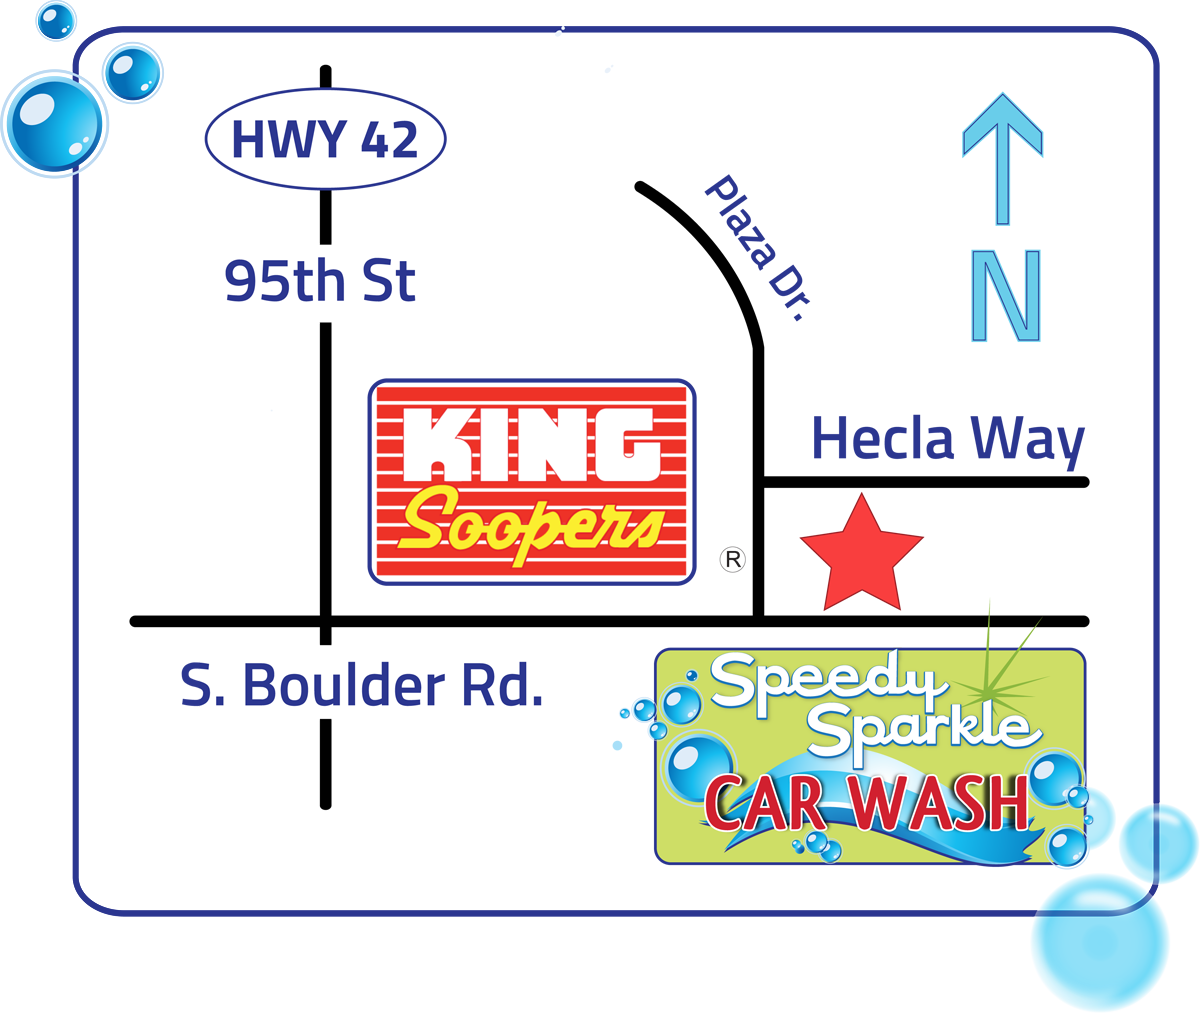 louisville speedy sparkle car wash location and directions